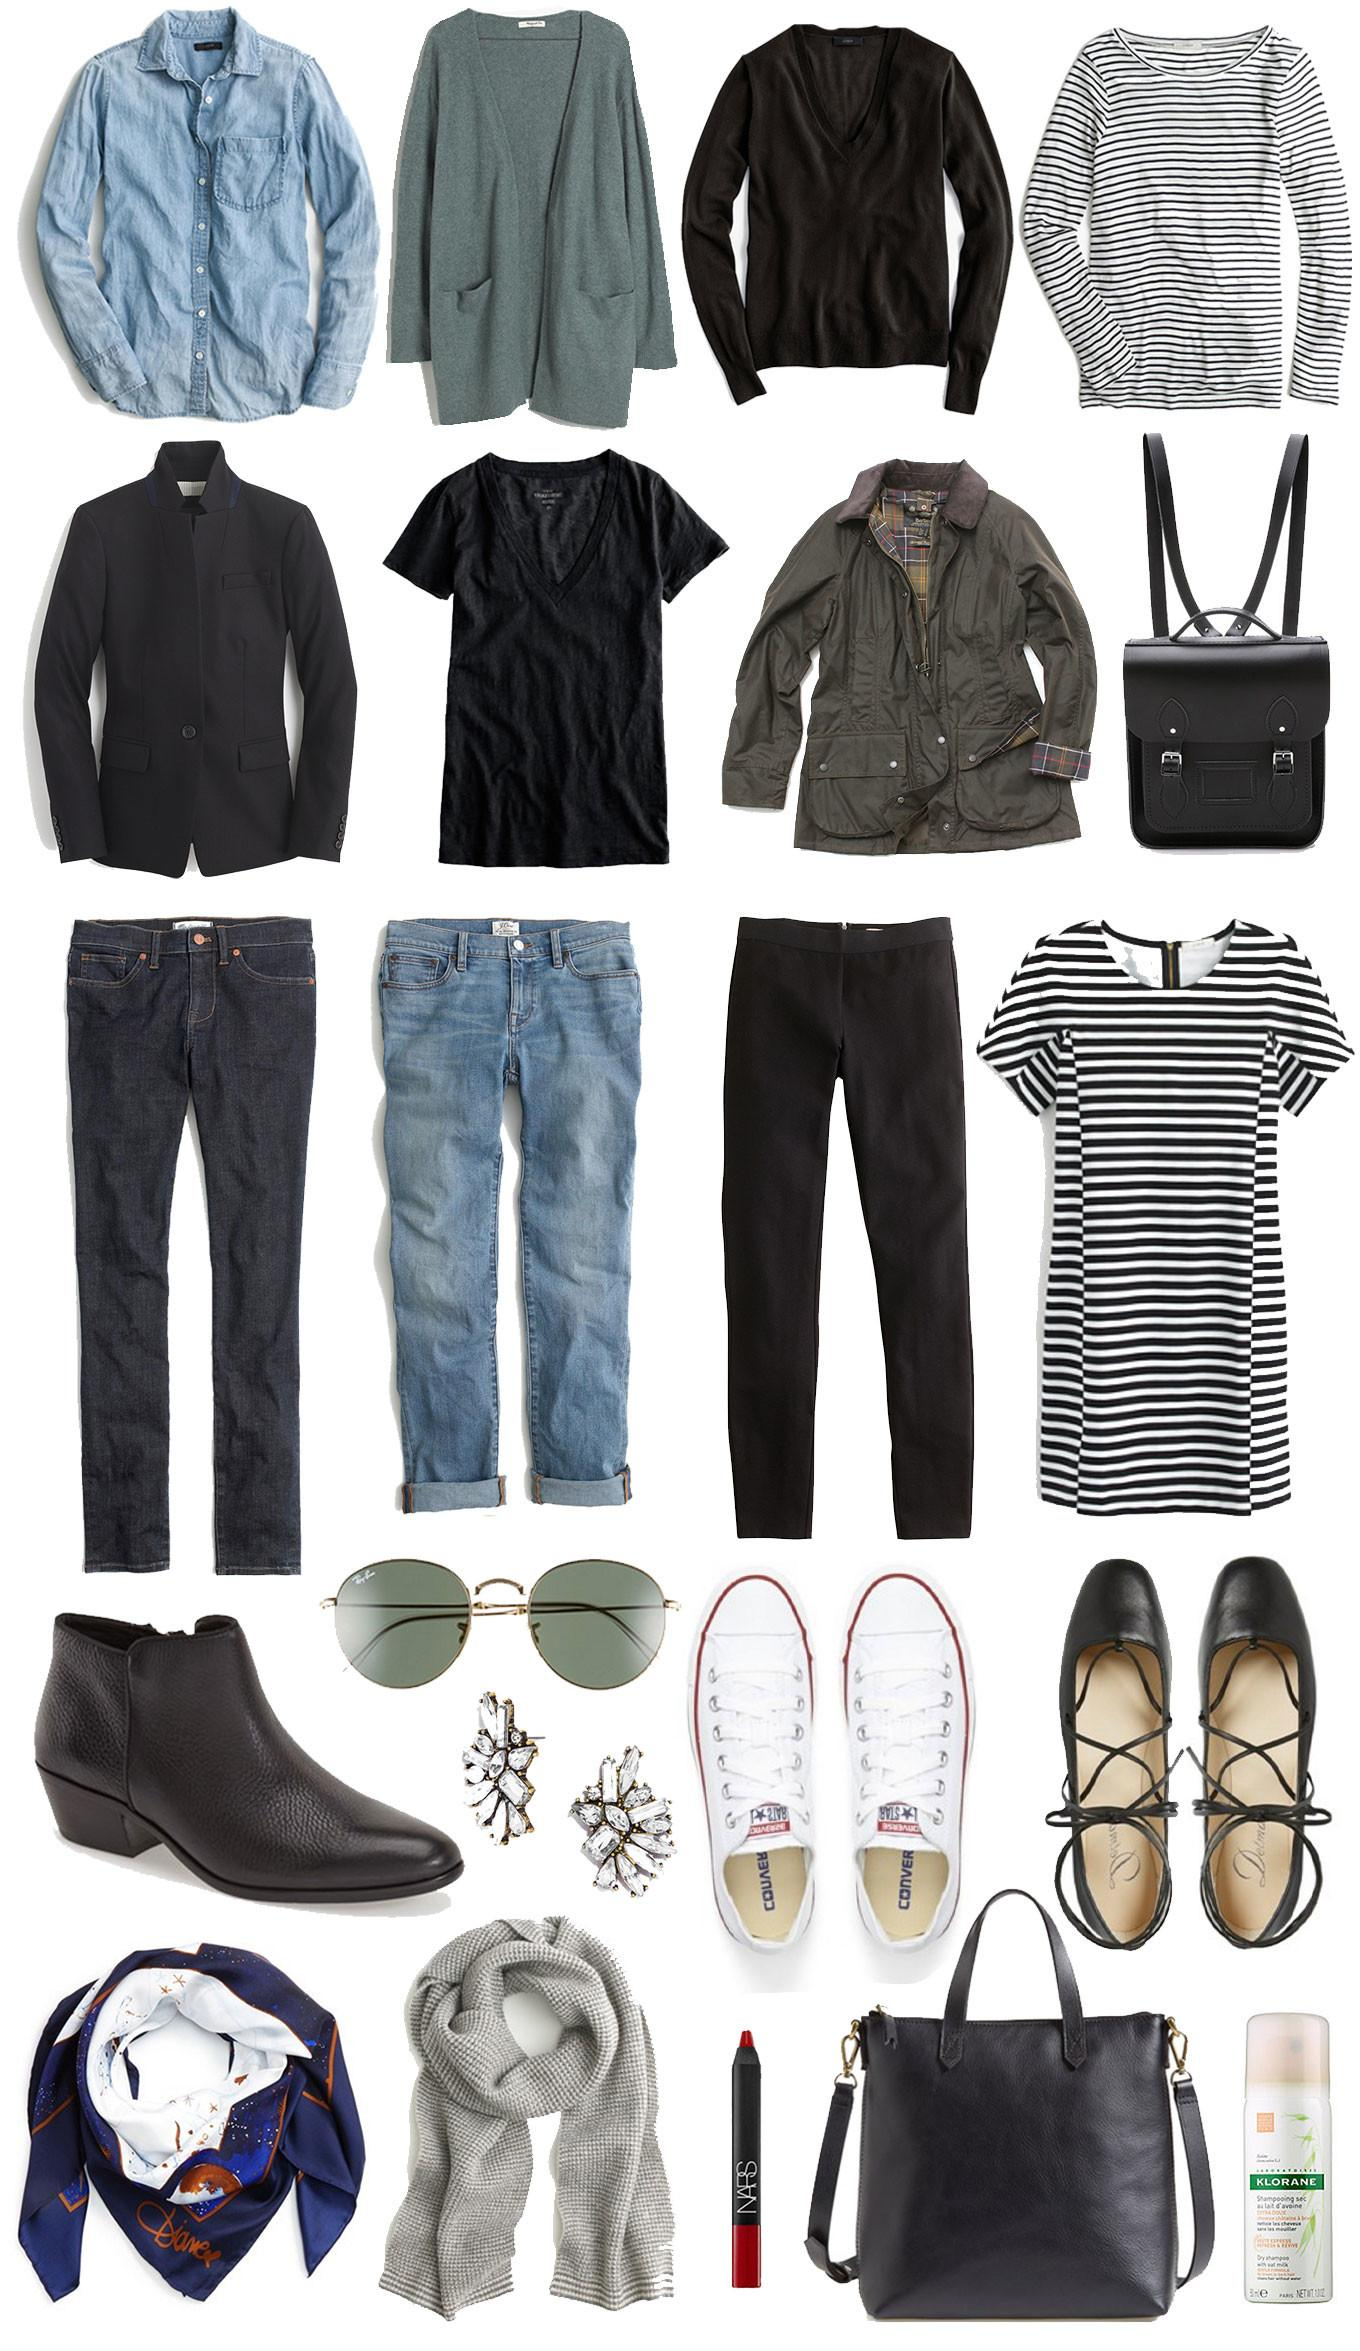 Travel Capsule Wardrobe Your Ultimate Packing List